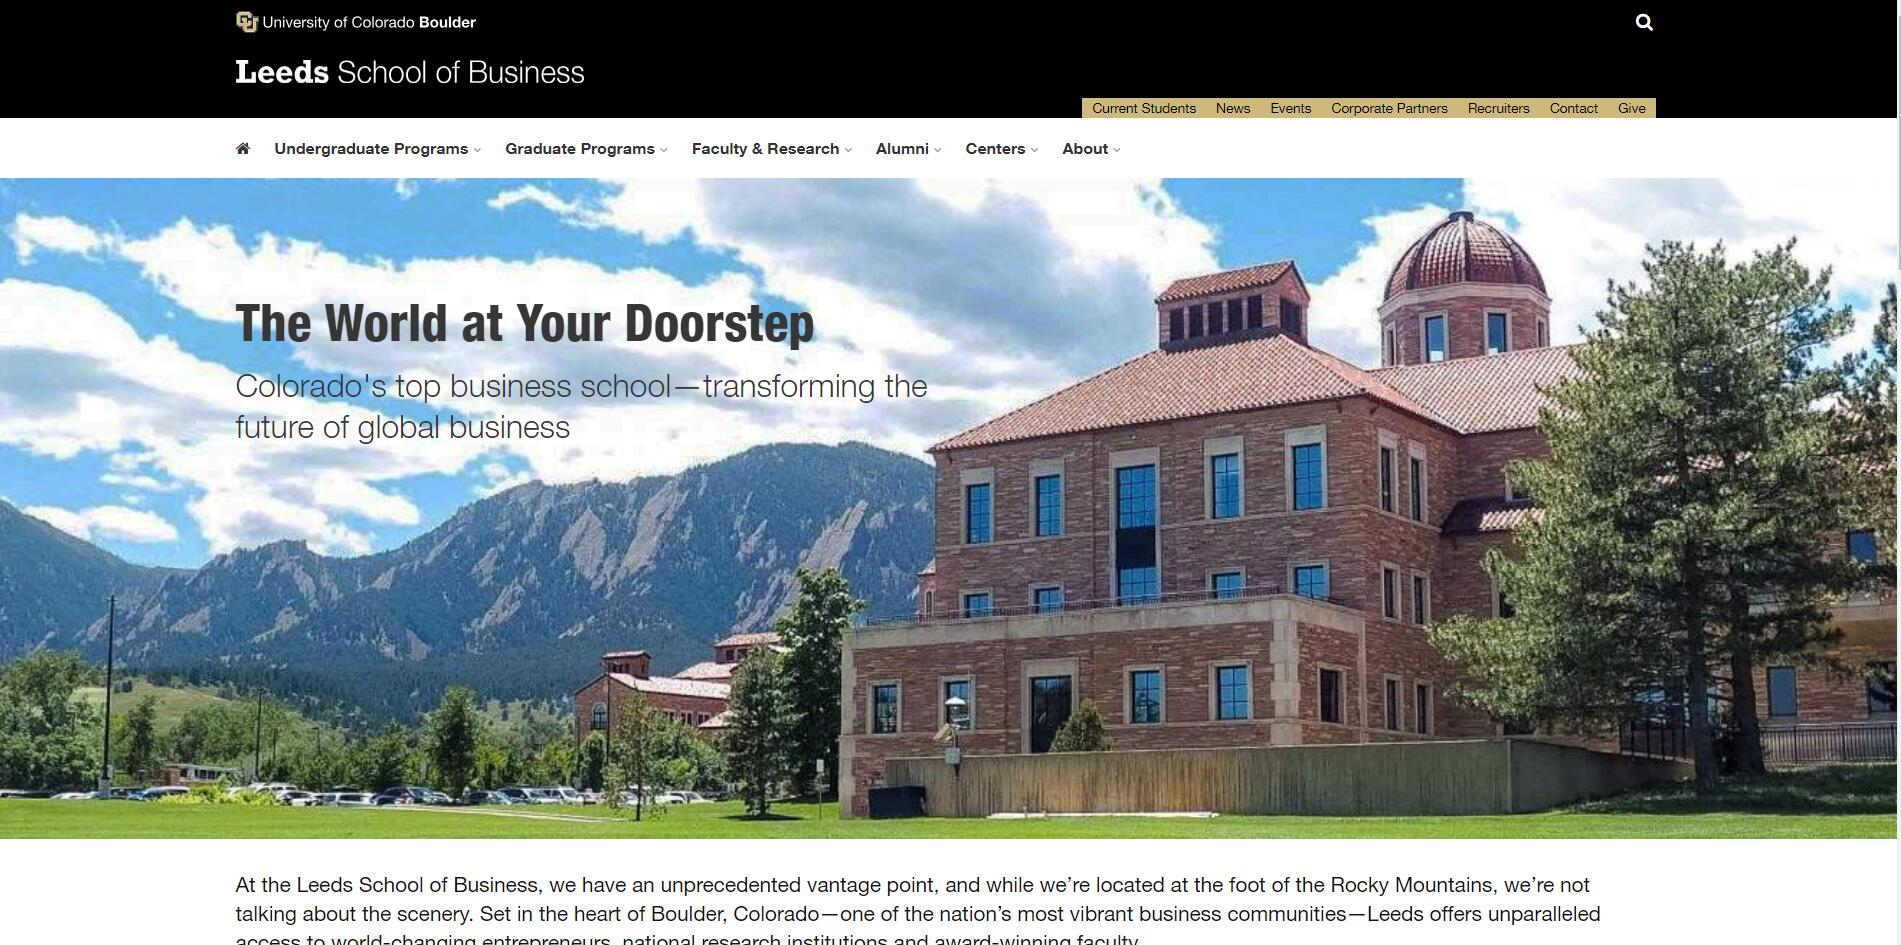 The Leeds School of Business at University of Colorado--Boulder